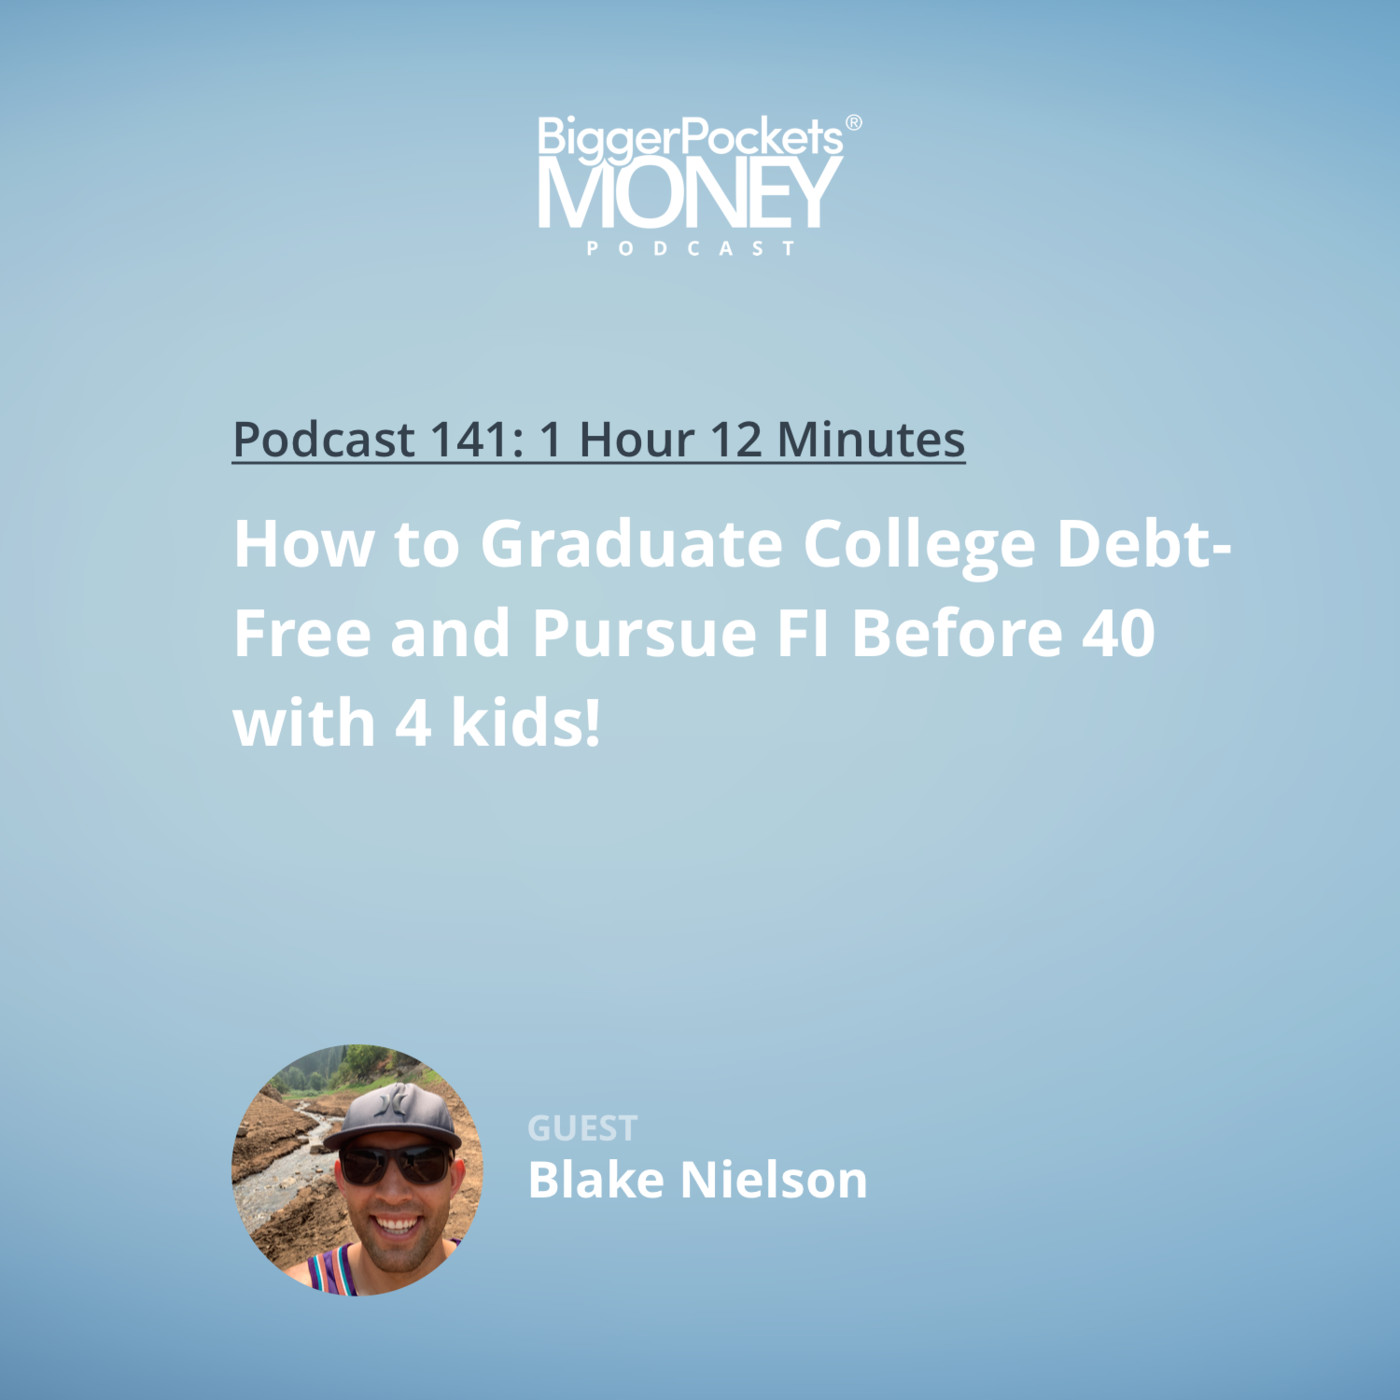 141: How to Graduate College Debt-Free and Pursue FI Before 40 with 4 kids!